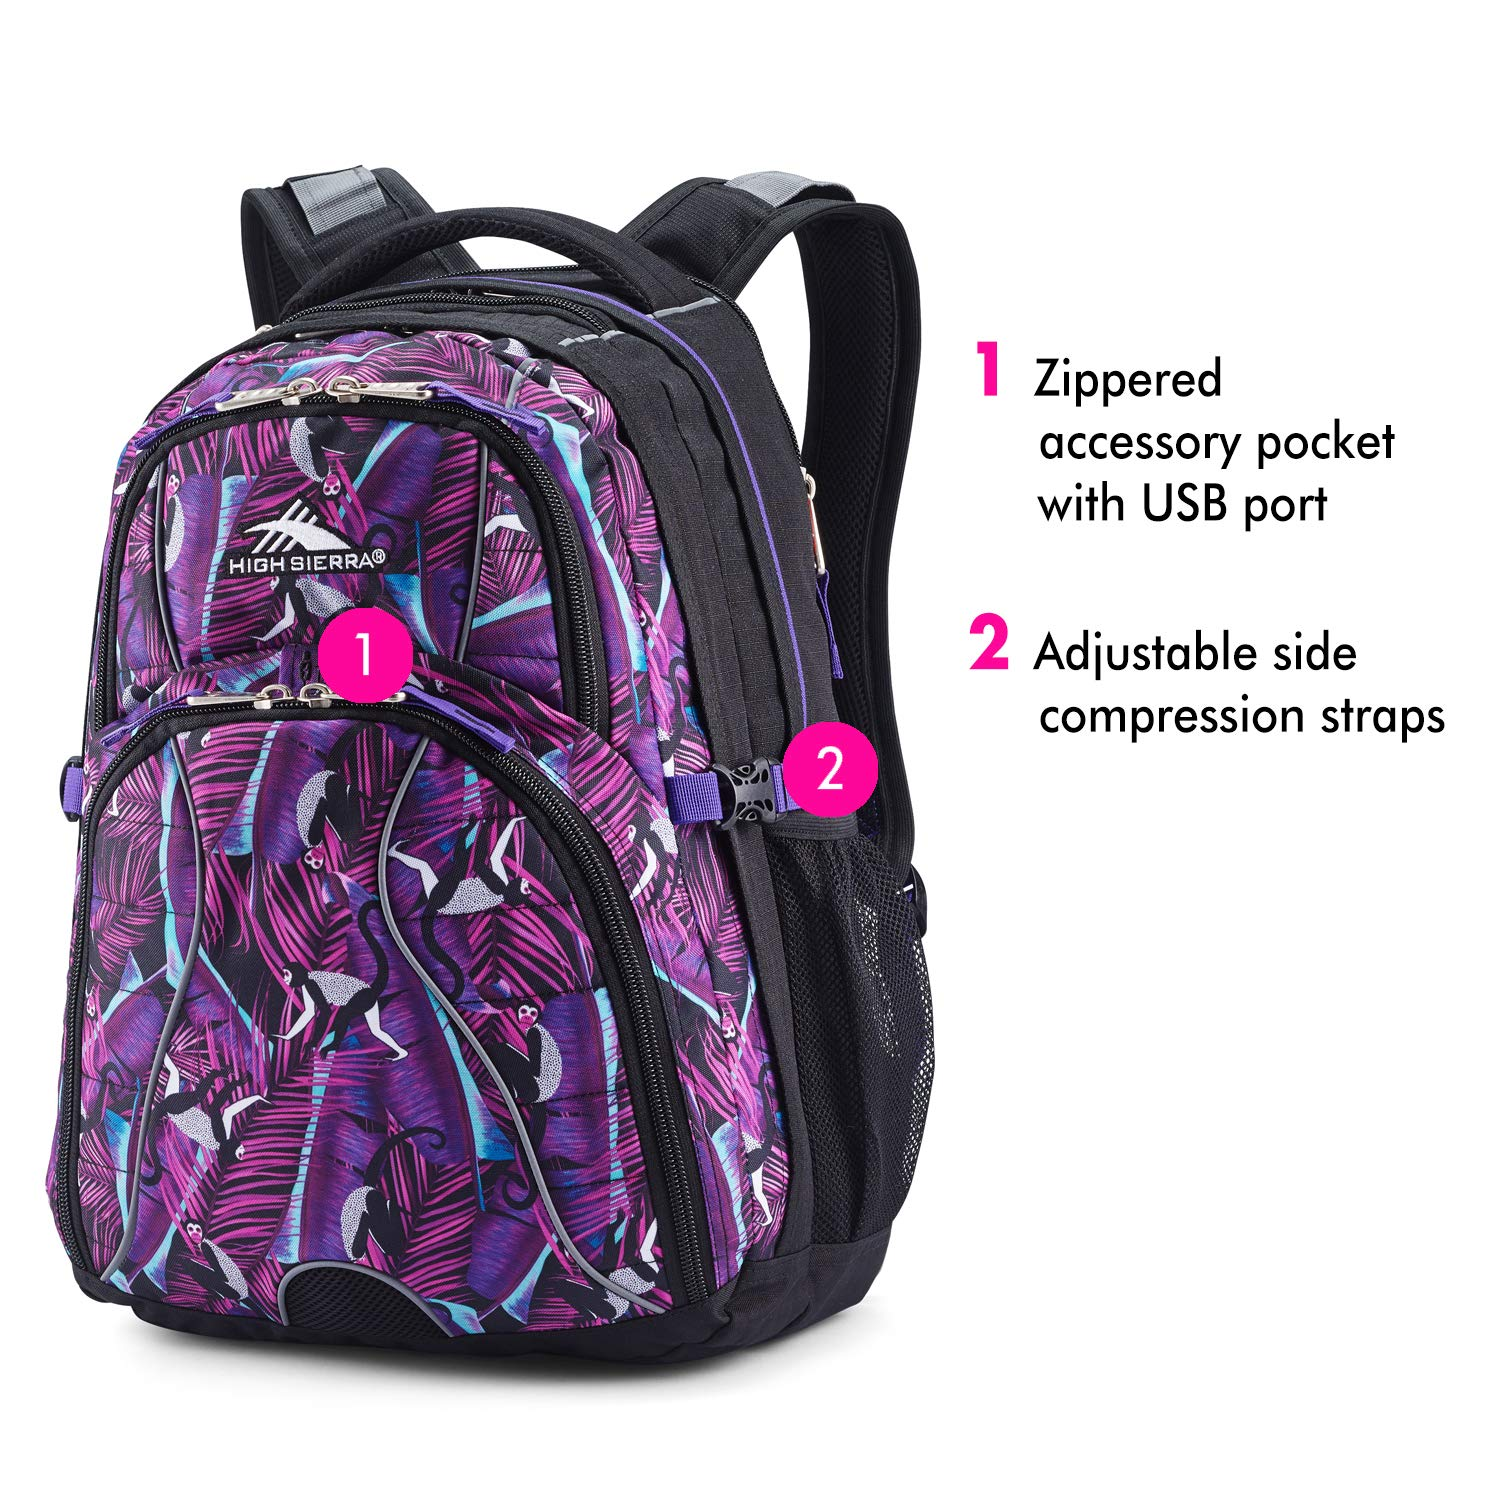 High Sierra Swerve Laptop Backpack, 17-inch Laptop Backpack for High School or College, Ideal Gaming Laptop Backpack, Large Compartment Student Laptop Backpack with Organizer Pocket by High Sierra (Image #4)